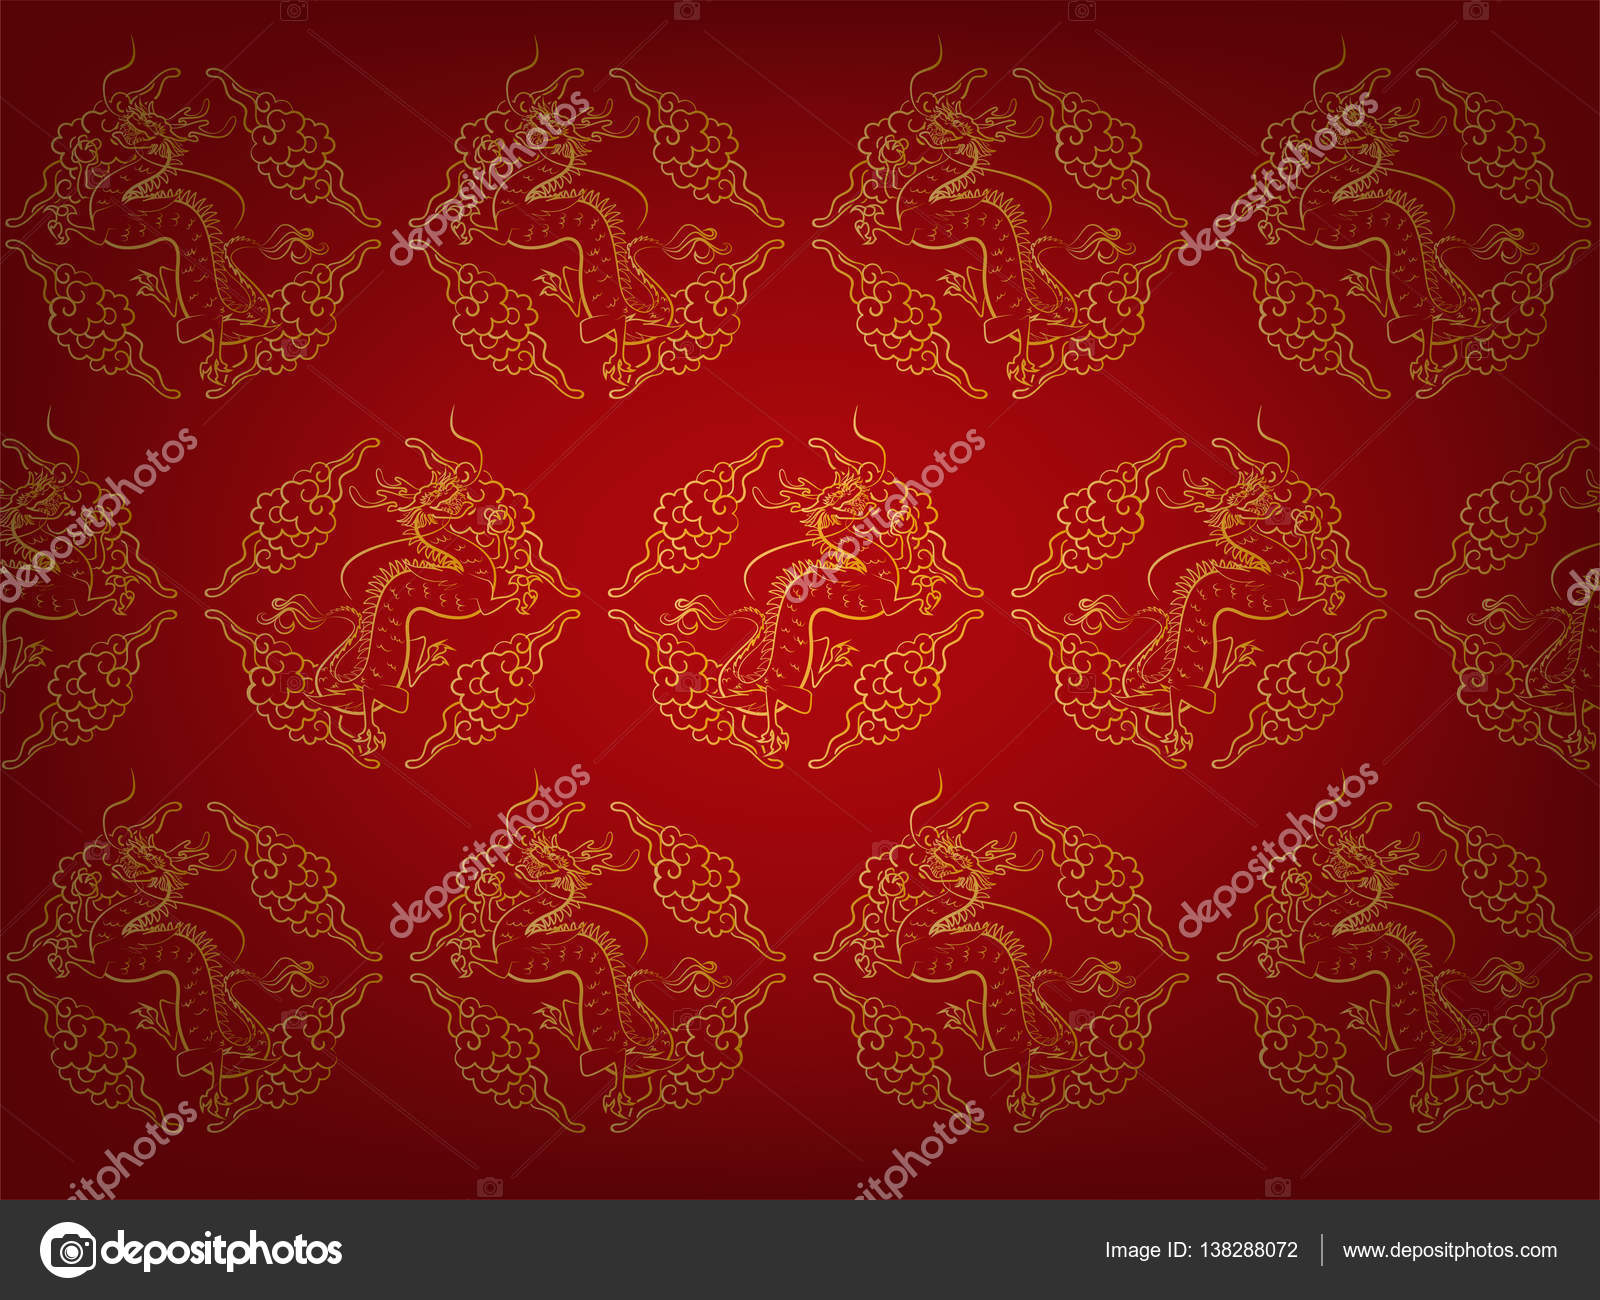 Red Chinese Dragon Wallpaper Illustration Vector Fragment Of Red Chinese Pattern Texture Style Wallpaper With Golden Dragons And Chinese Cloud Chinese Dragon Pattern Wallpaper Illustration Vector Design Concept Stock Vector C